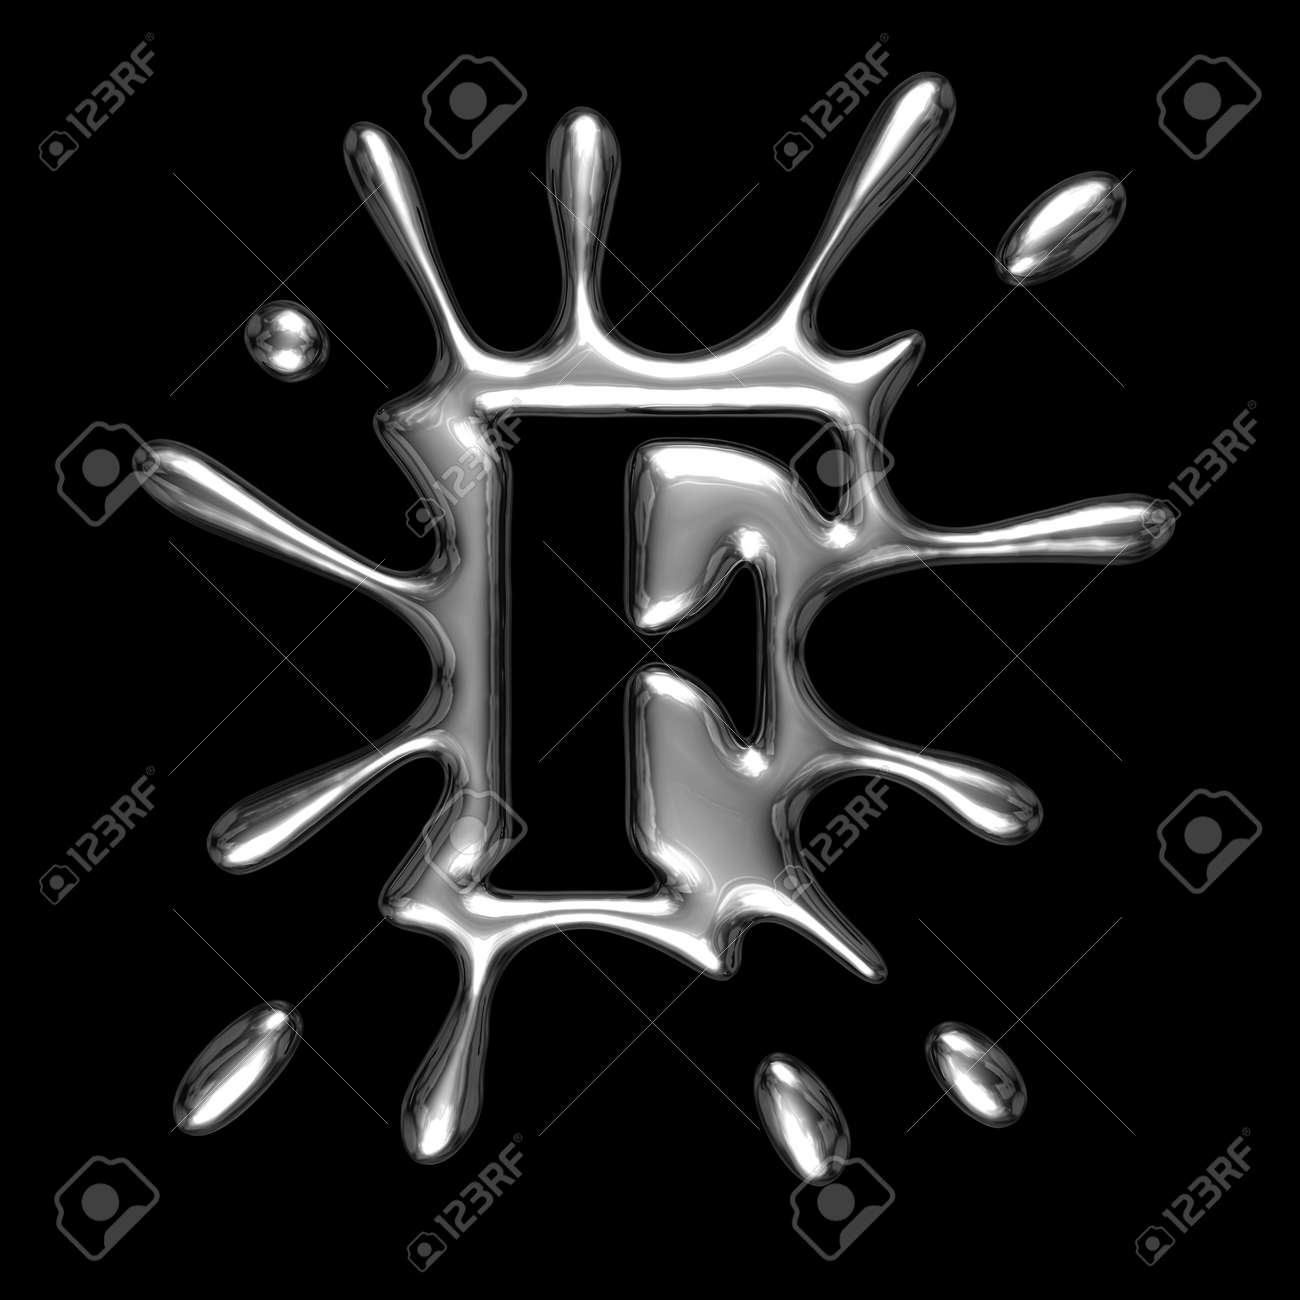 Liquid metal letter F - alphabet symbol isolated on a black background (with path) Stock Photo - 4918549